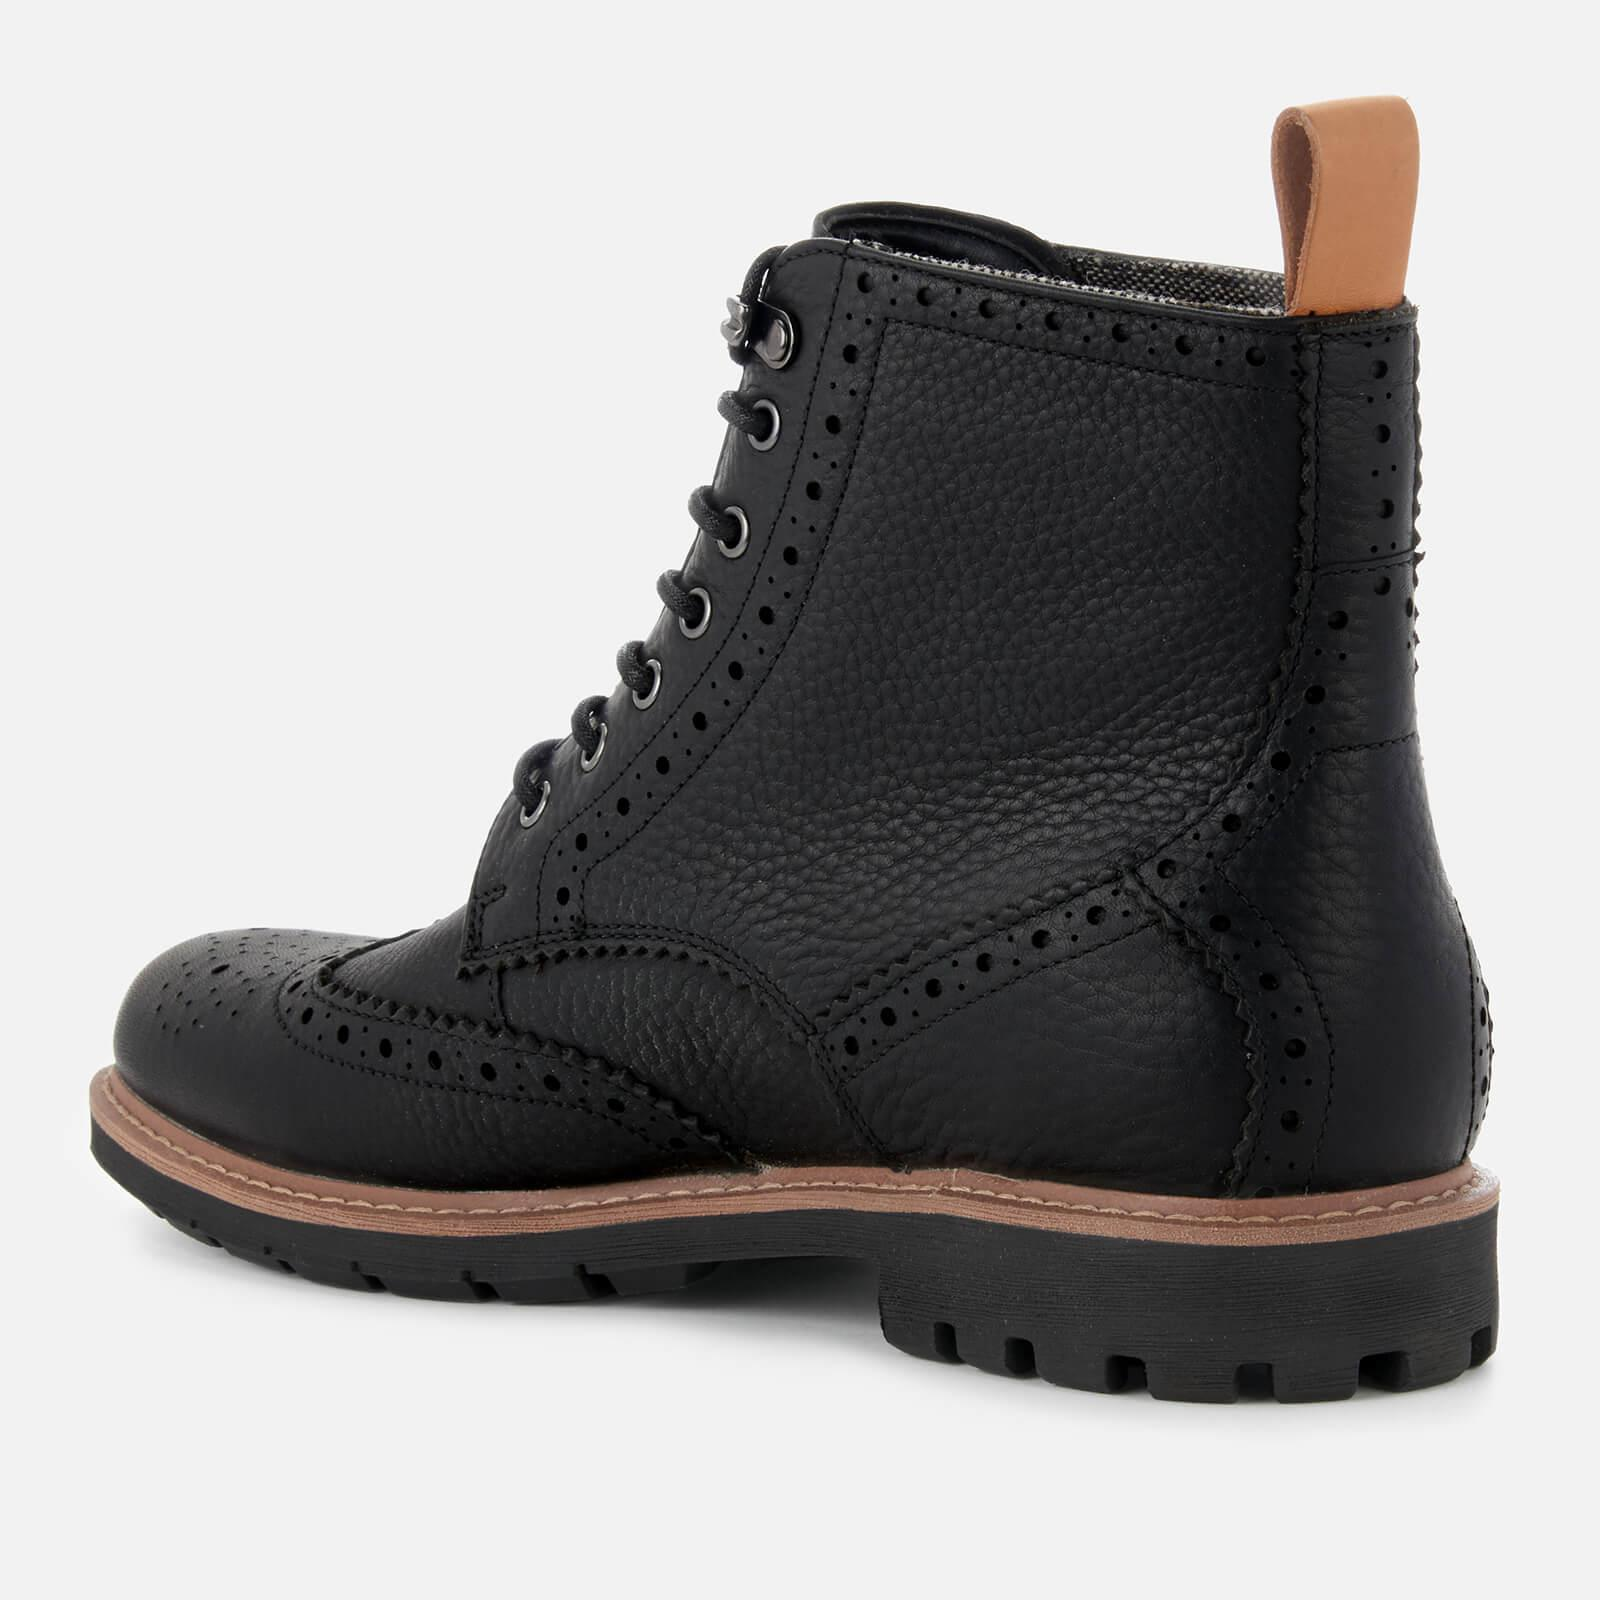 932107a3ea clarks-Black-Batcombe-Lord-Leather-Brogue-Lace-Up-Boots.jpeg